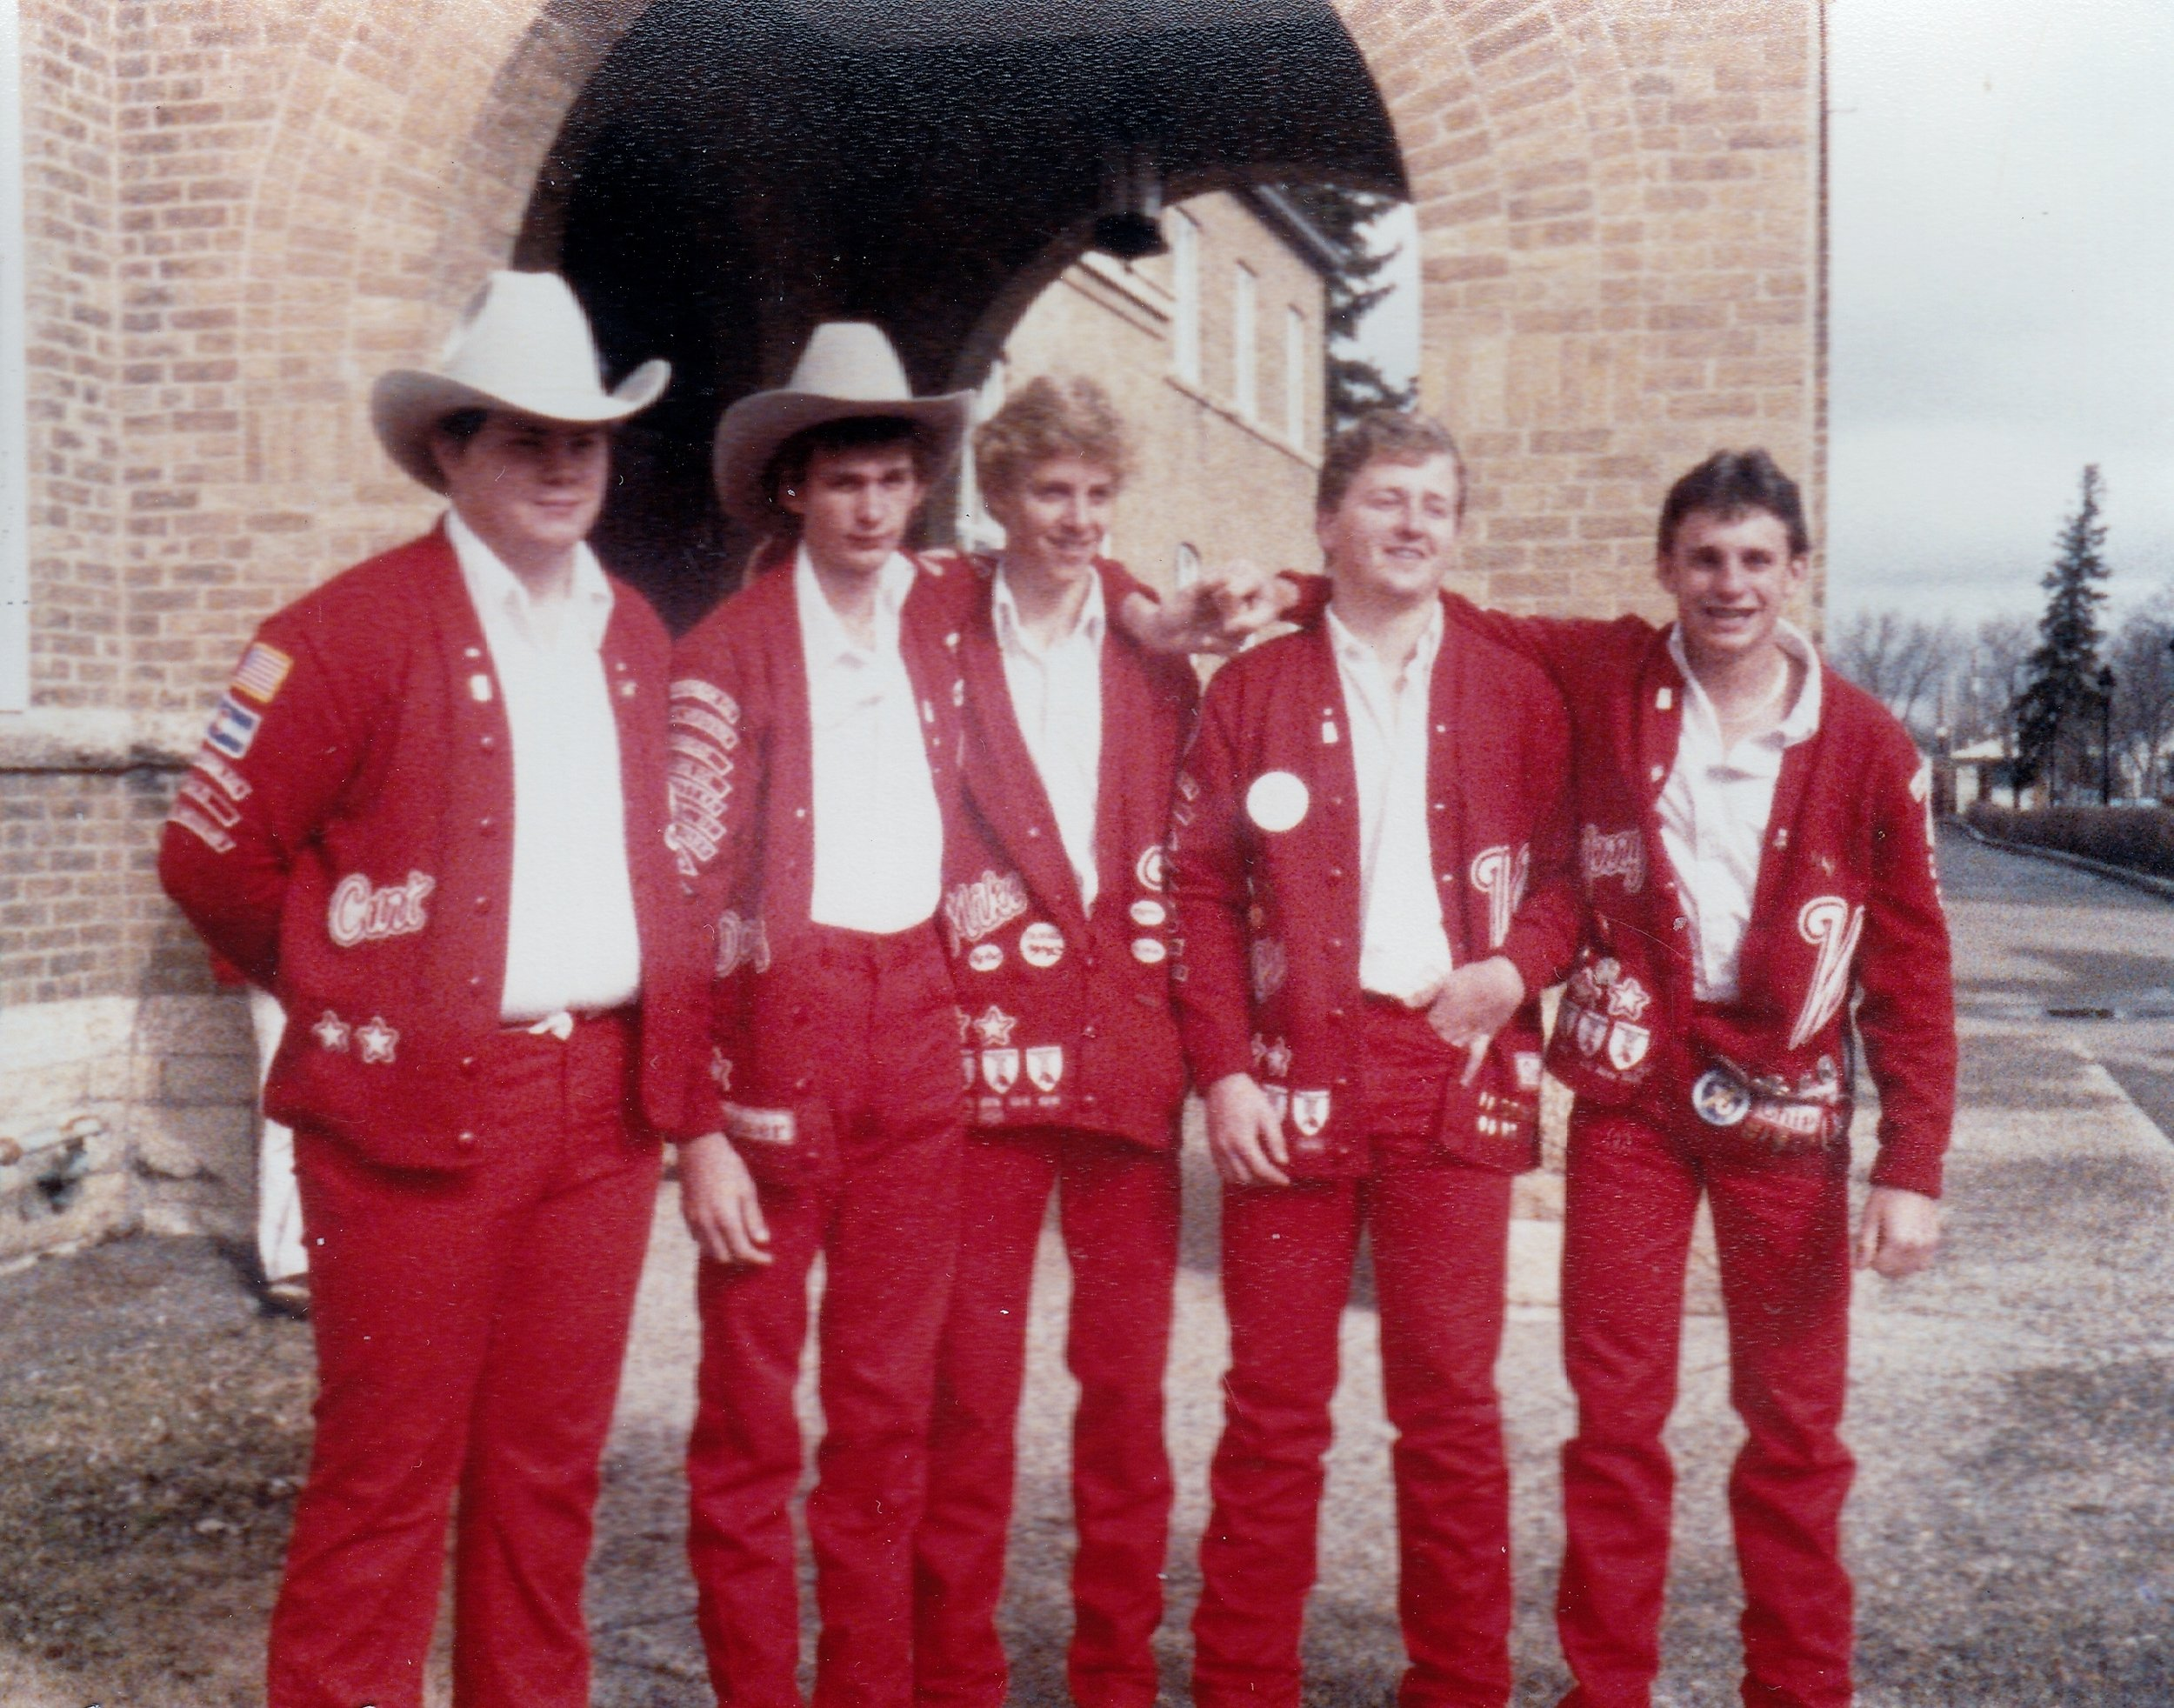 """Since 1885, the RCMP Academy, """"Depot"""" Division in Regina, Saskatchewan has been training members of the Canadian national police force. Varsity Red Team boys on tour of the Academy facilities. From left to right: Curt Fear, Doug Hesser, Mike Keller, Chad Kestner, and Jerry Bauer."""